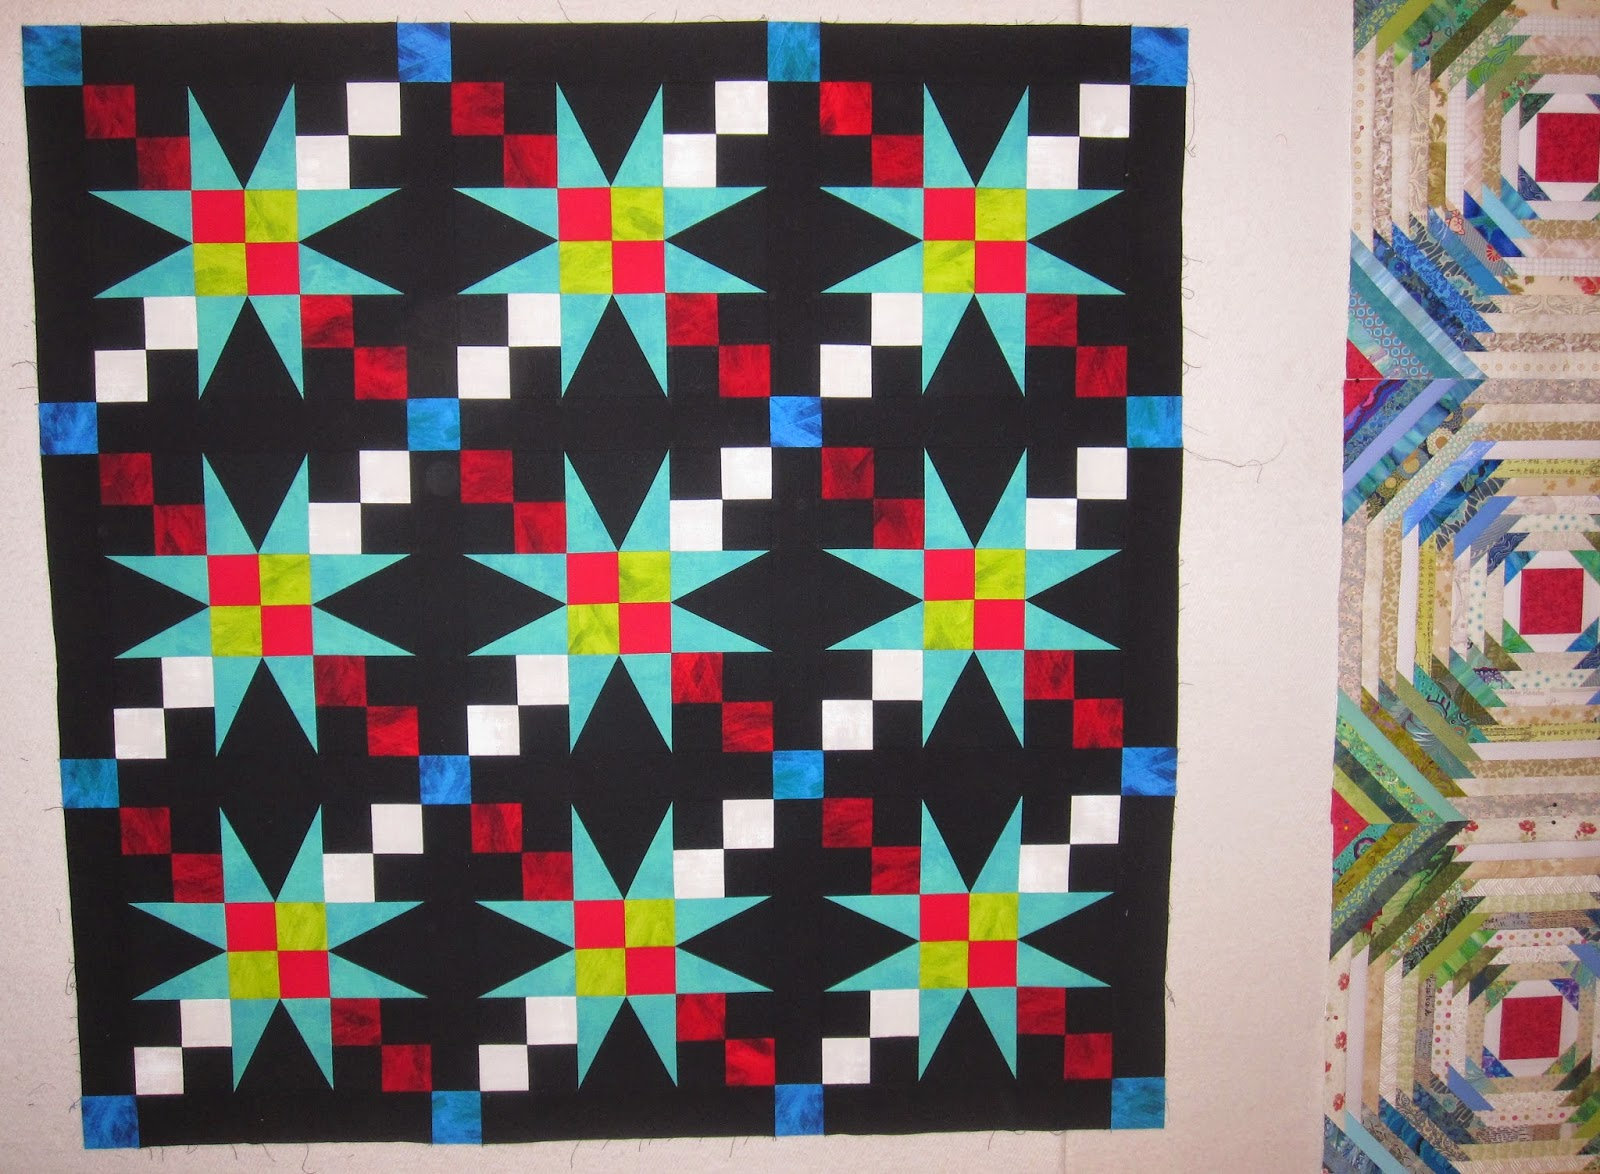 Cheeky Cognoscenti: Amish Baby 54-40 Or Fight is Sashed and Ready ... : 54 40 or fight quilt - Adamdwight.com